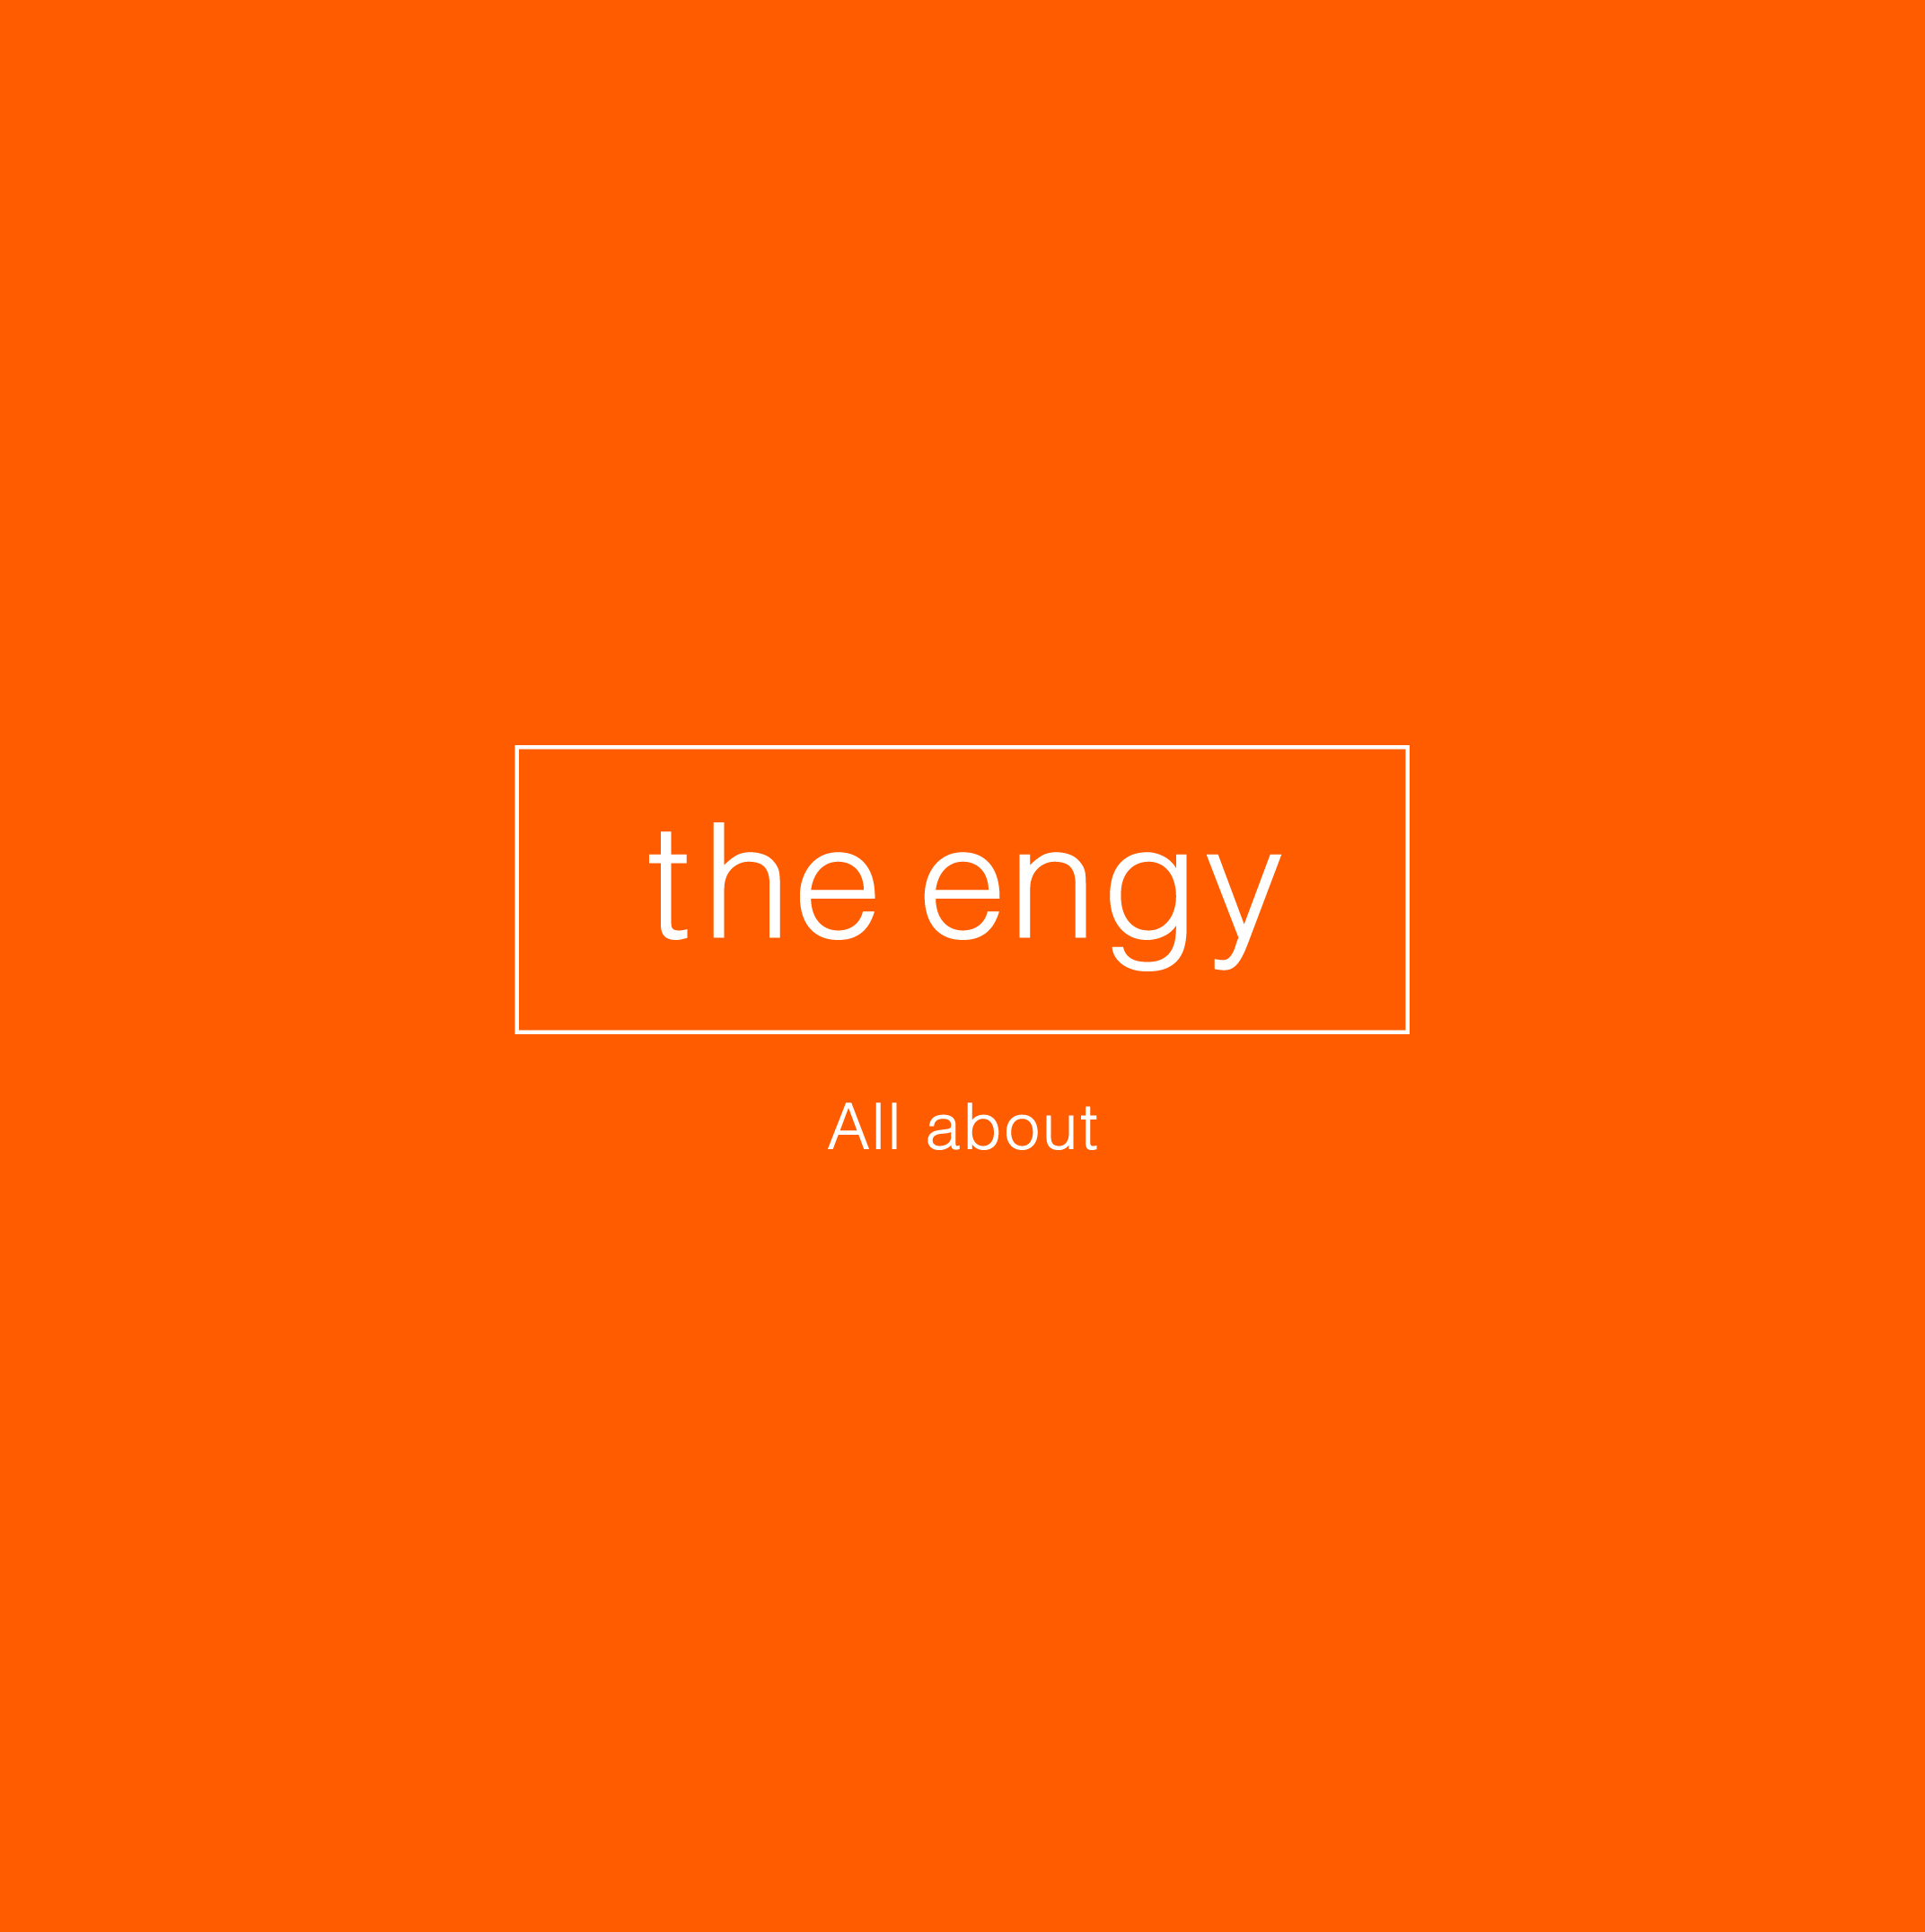 the engy_All about